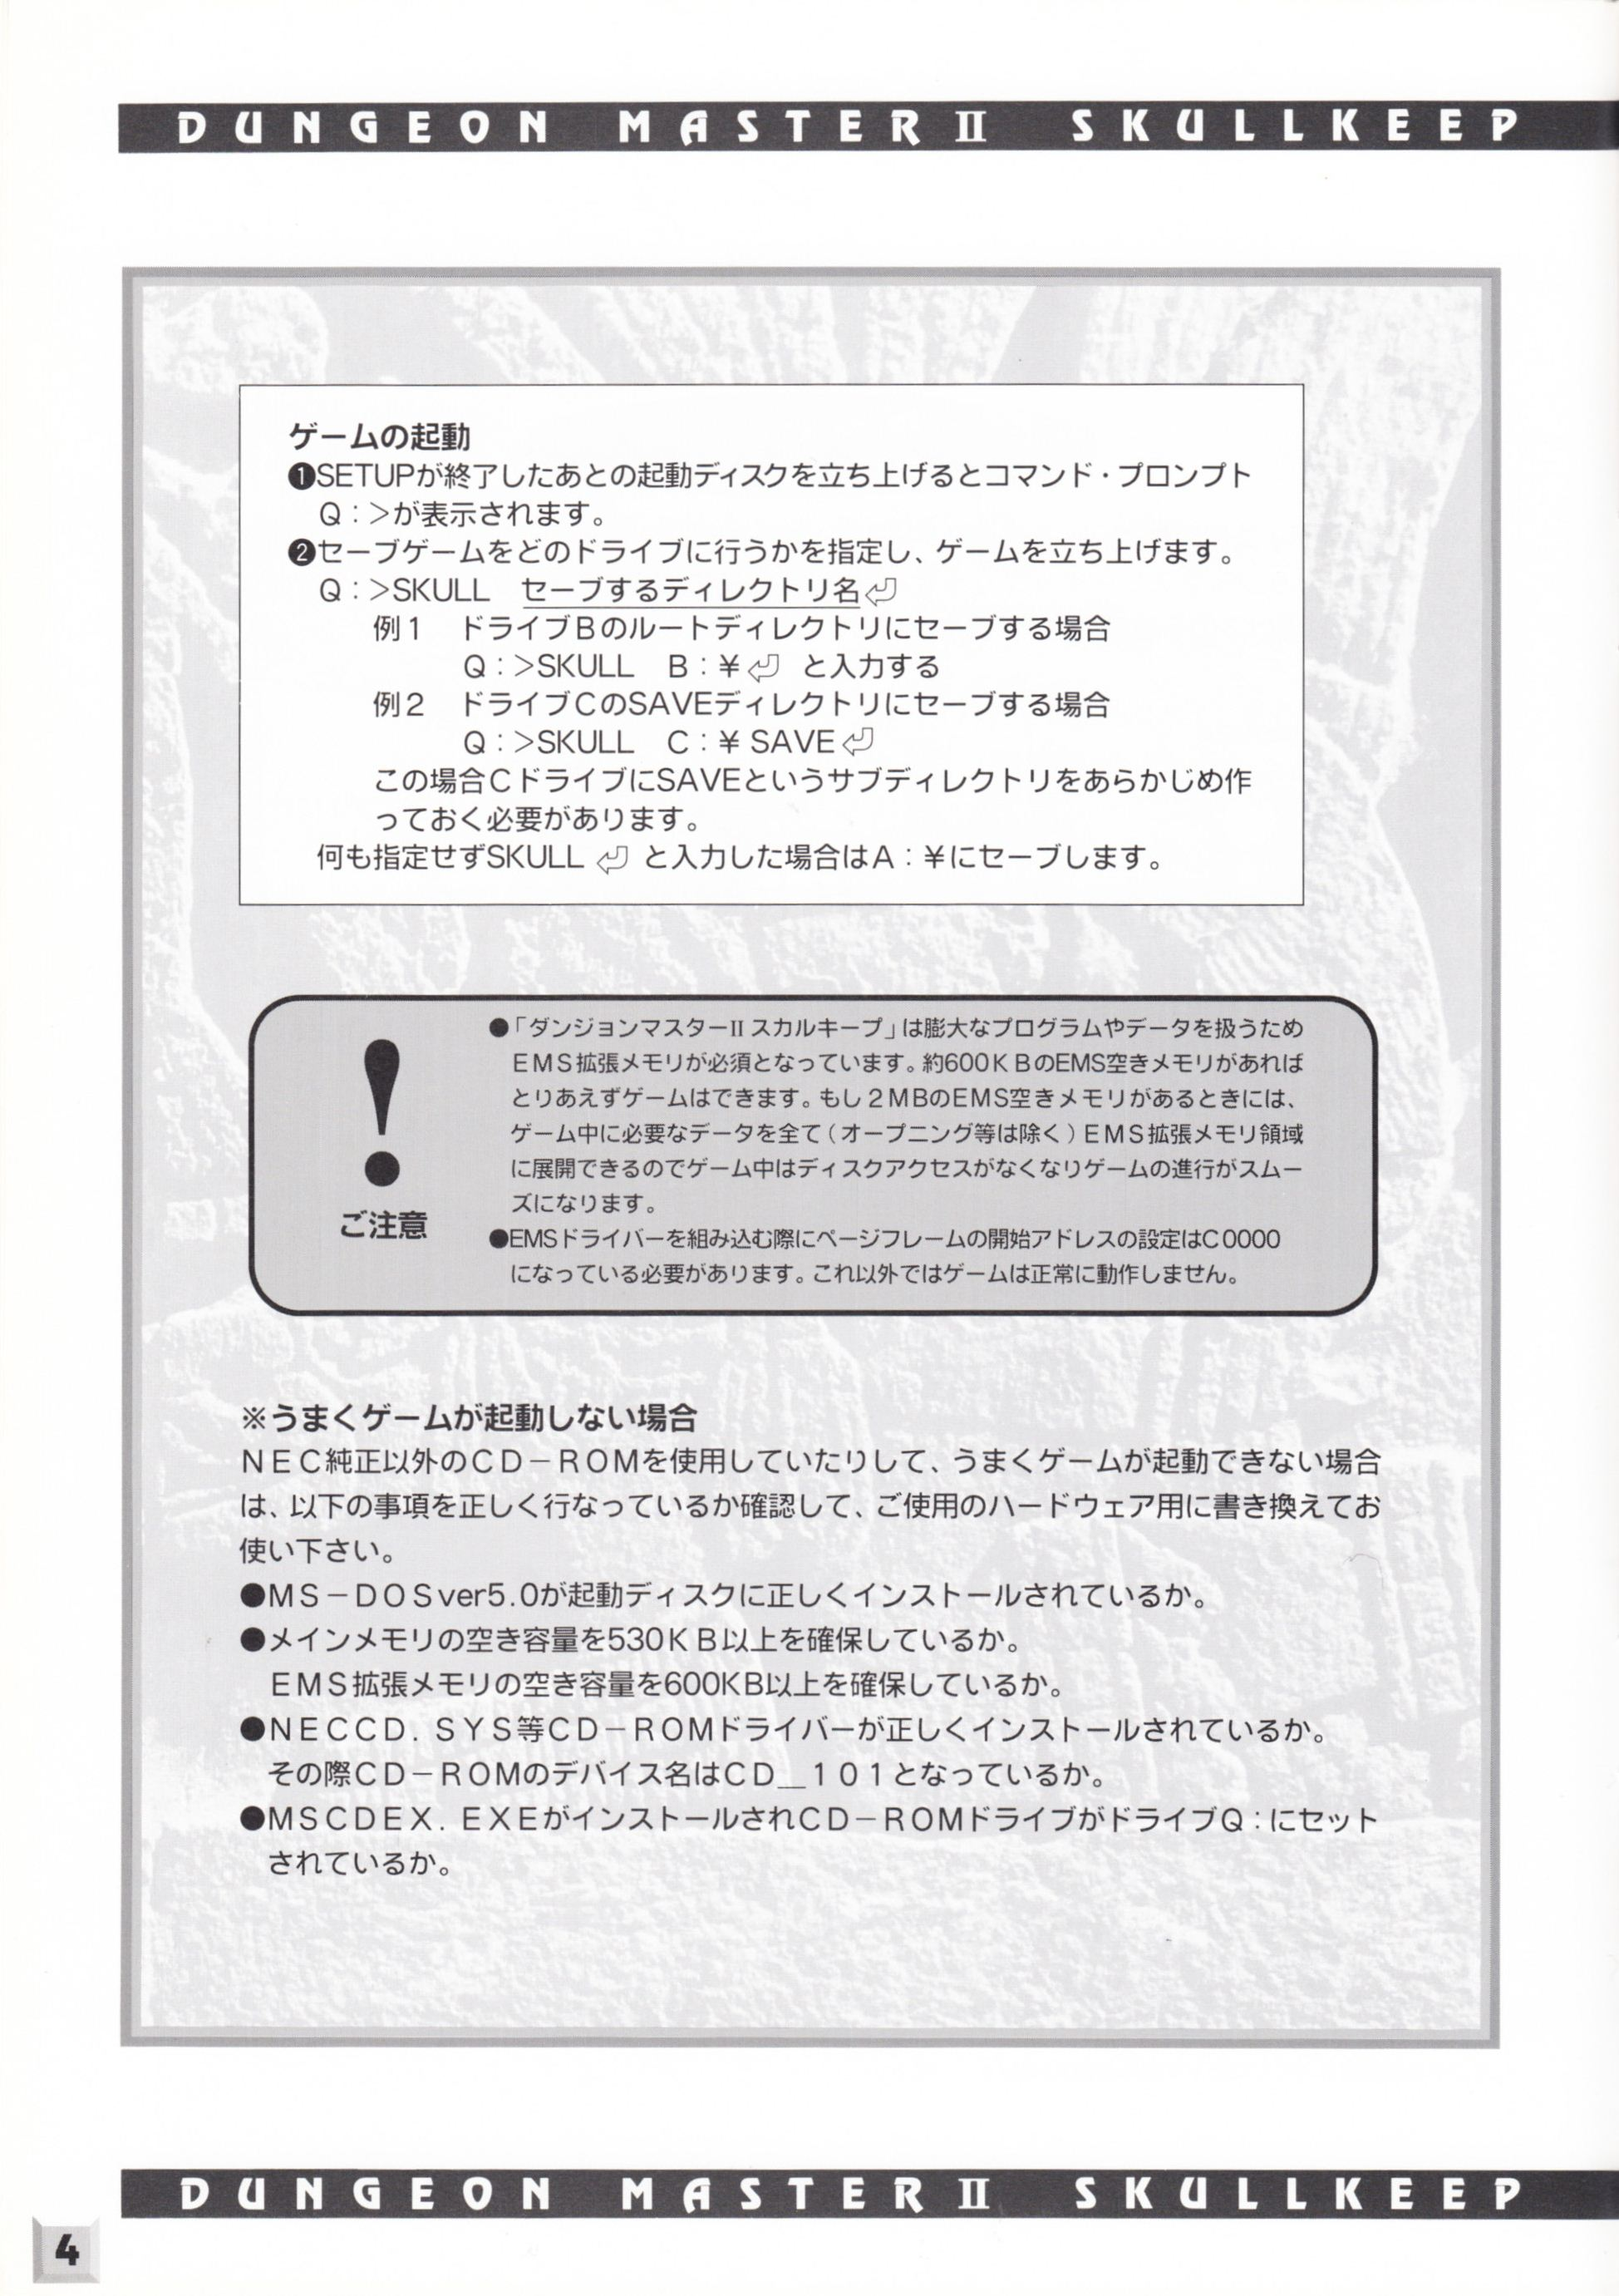 Game - Dungeon Master II - JP - PC-9821 - An Operation Manual - Page 006 - Scan